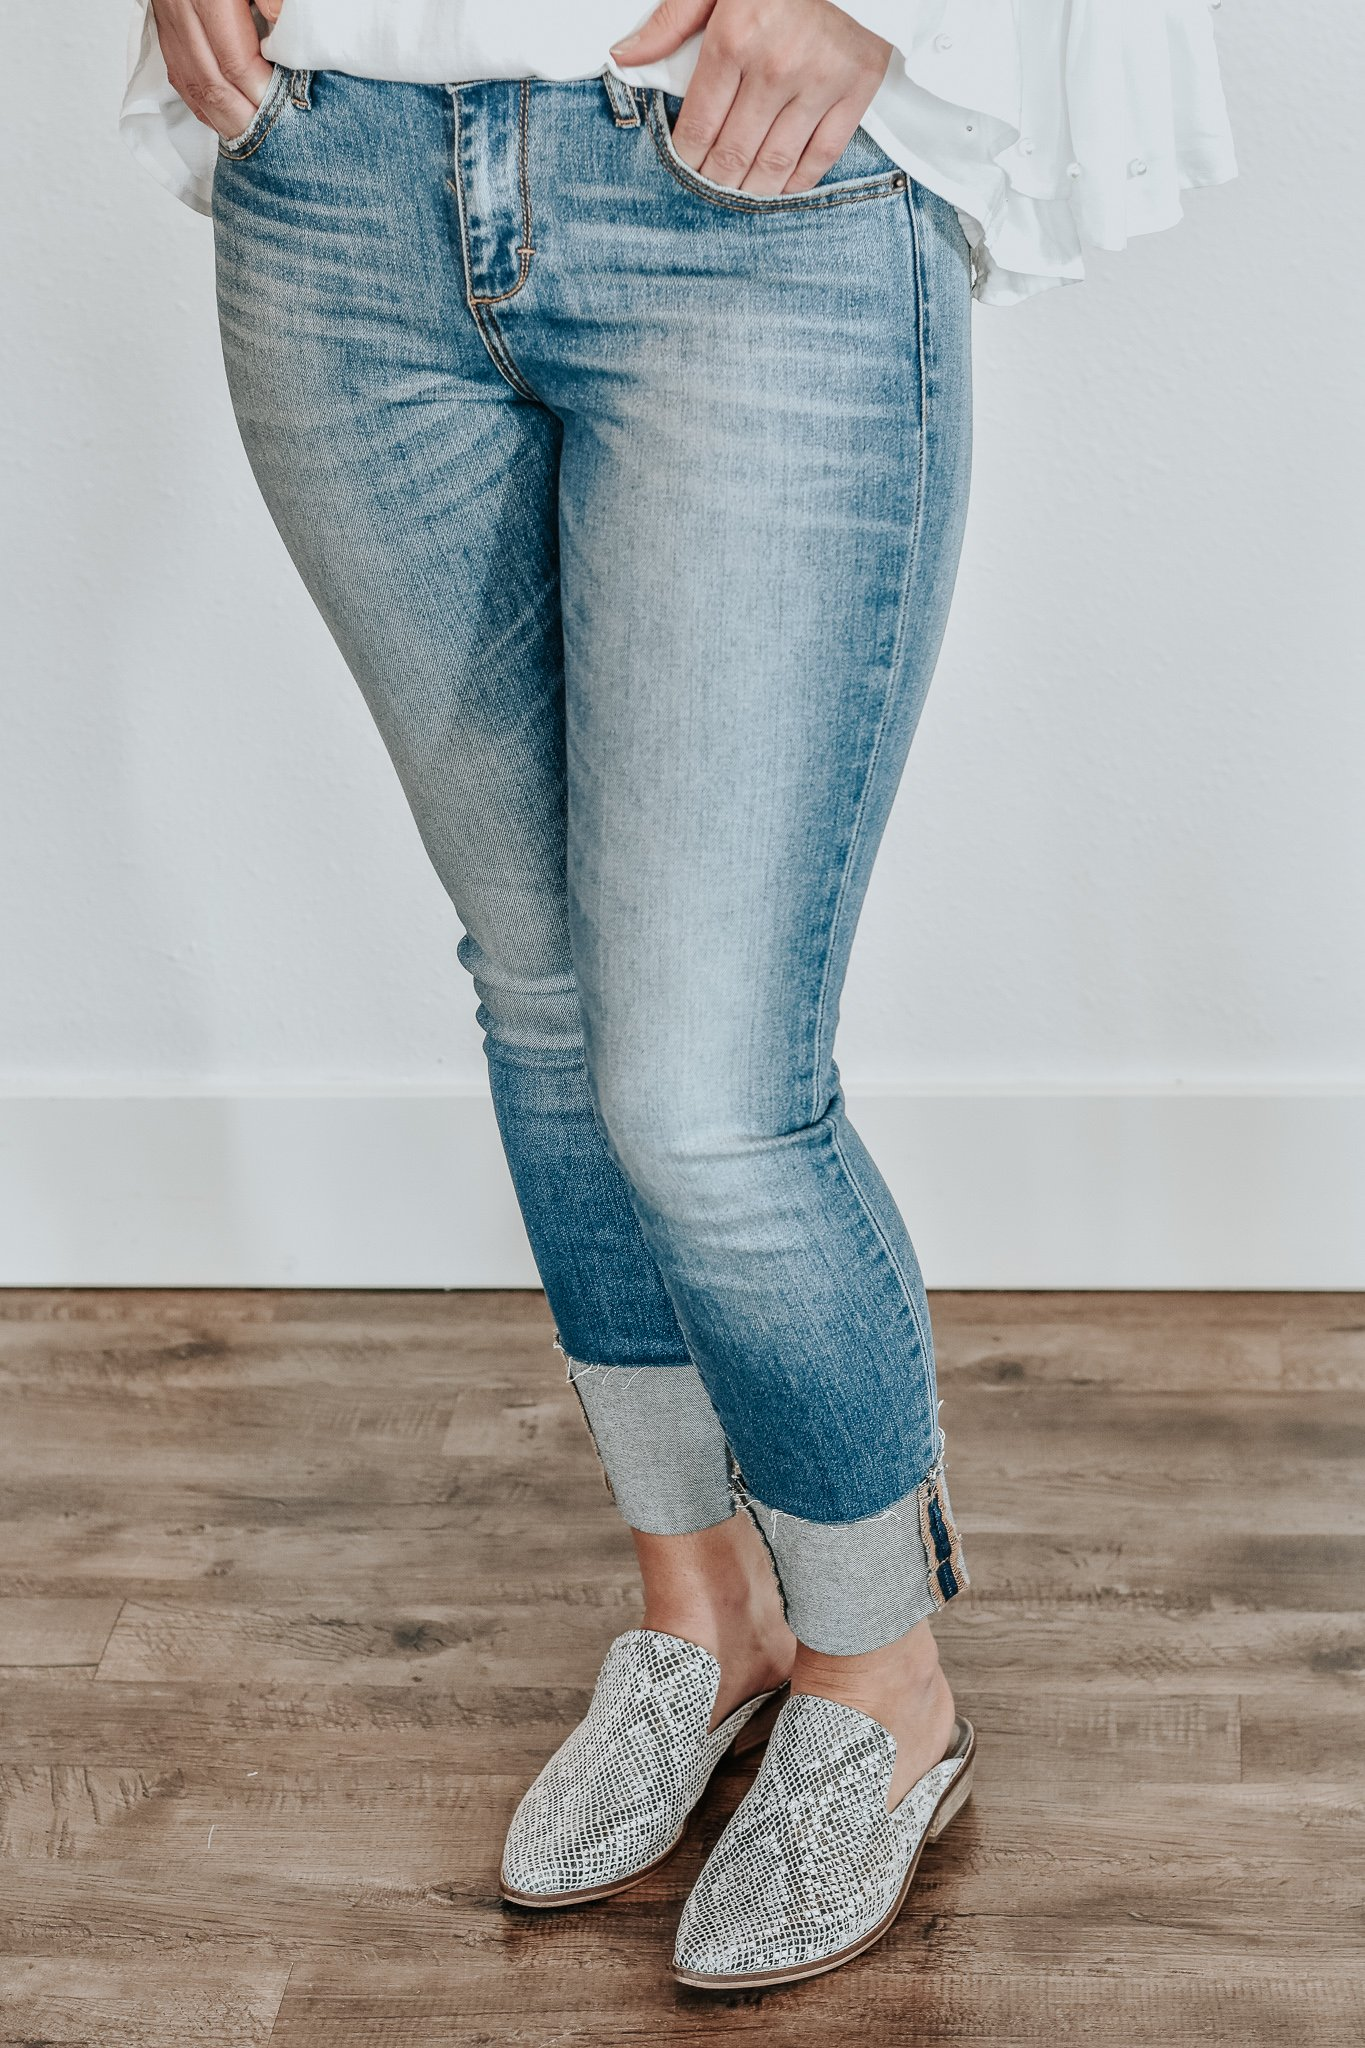 How To Hem Pants With A Cuff Reagan Cuff Hem Jeans Casual Weekend Outfit Hem Jeans Cuffed Skinny Jeans